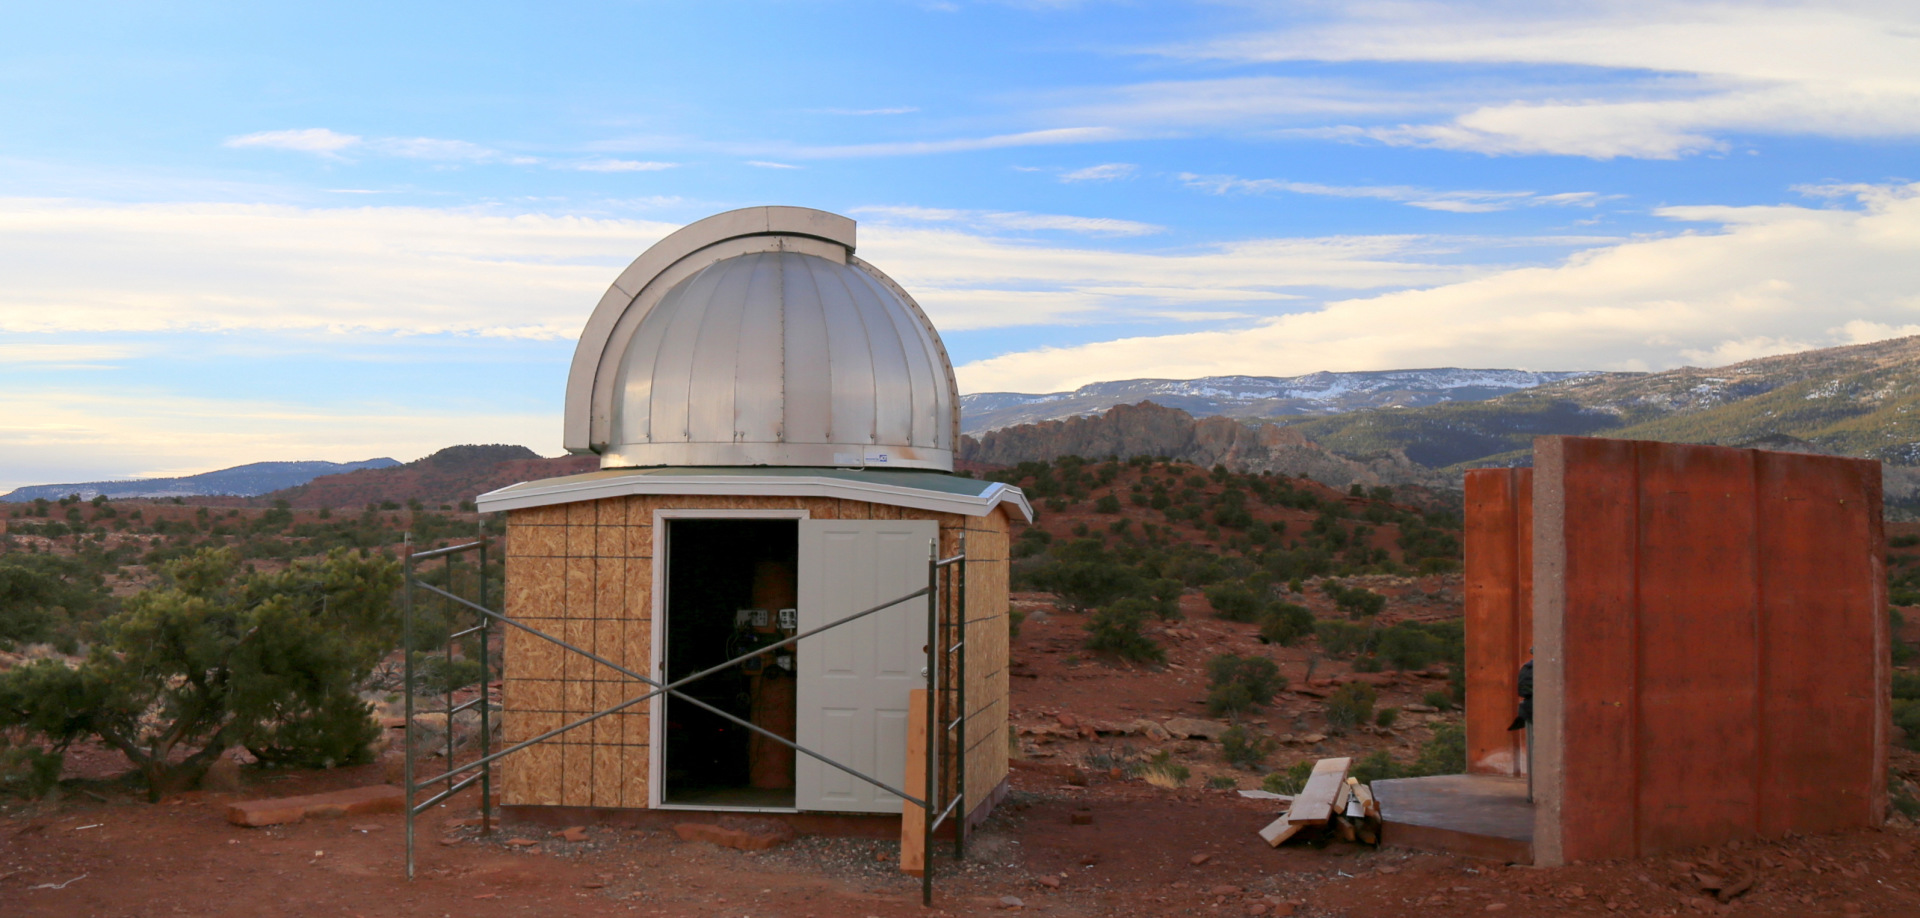 Blog 11: The Home observatory-plus